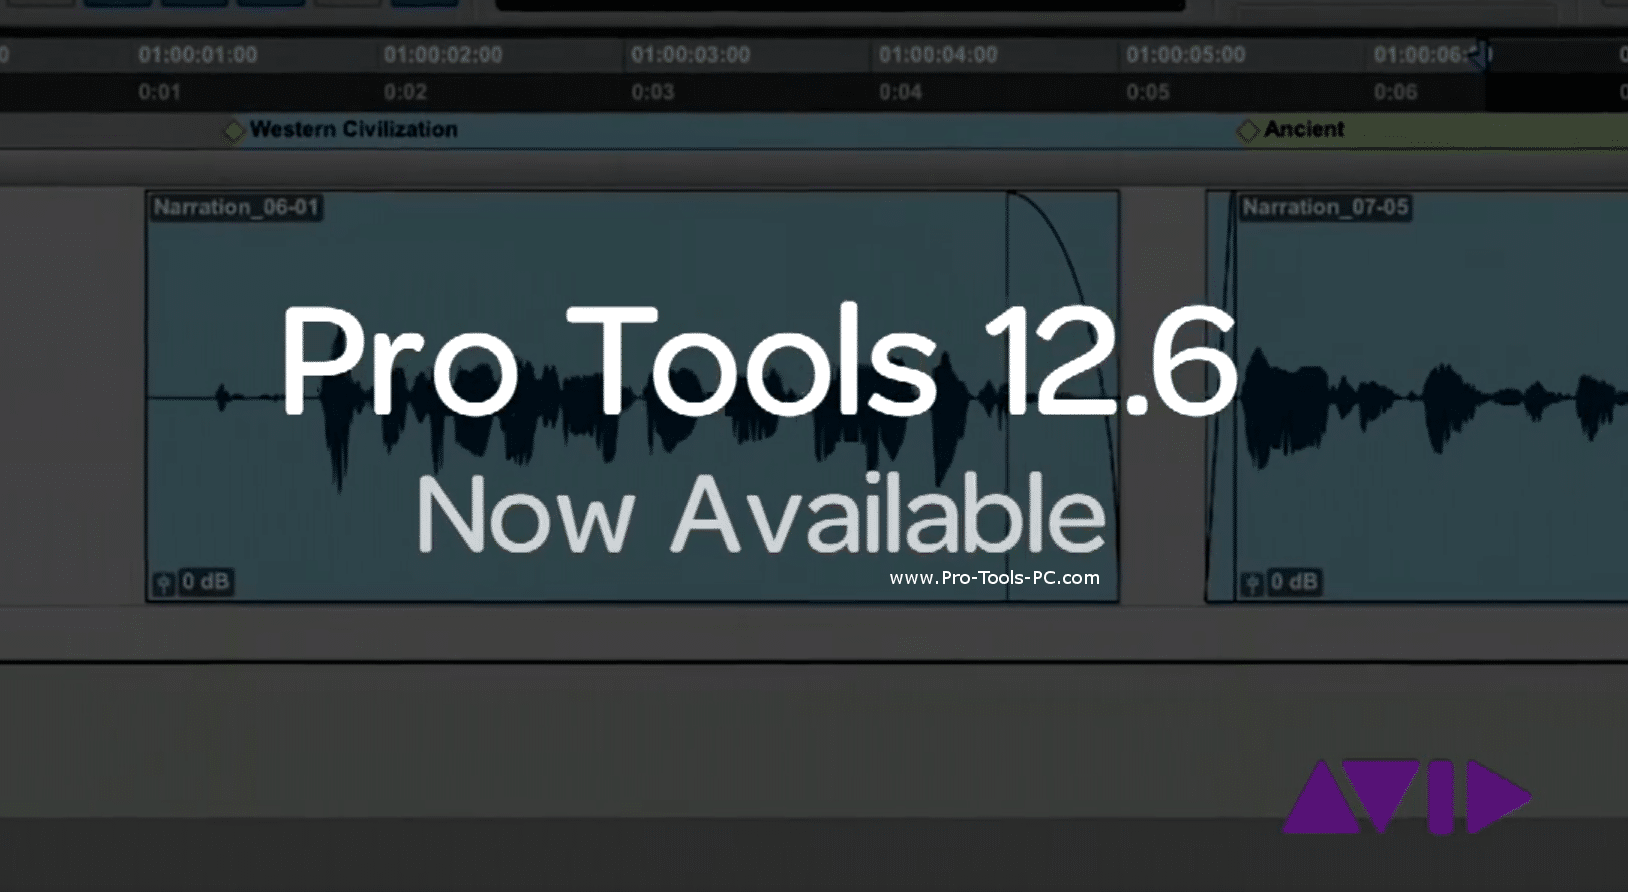 Pro tools 12 release date in Brisbane